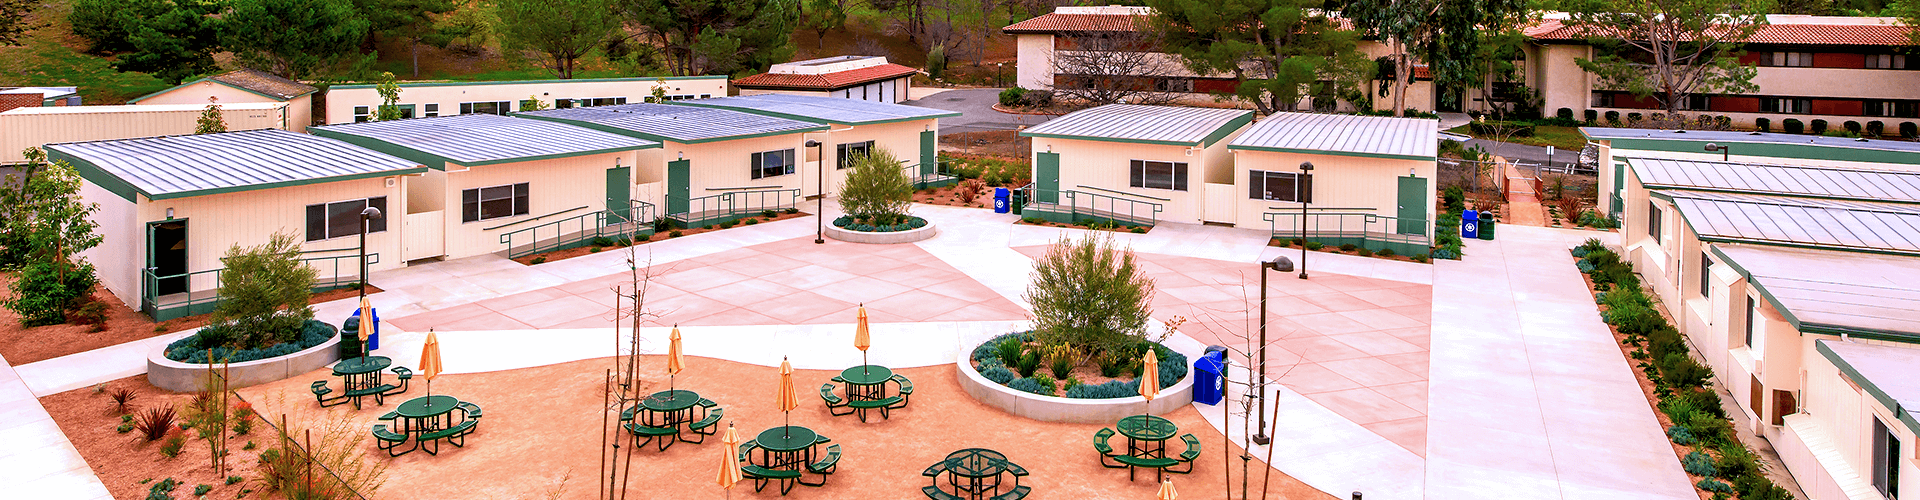 Modular Classroom For Rent ~ Portable classrooms and modular school buildings for rent